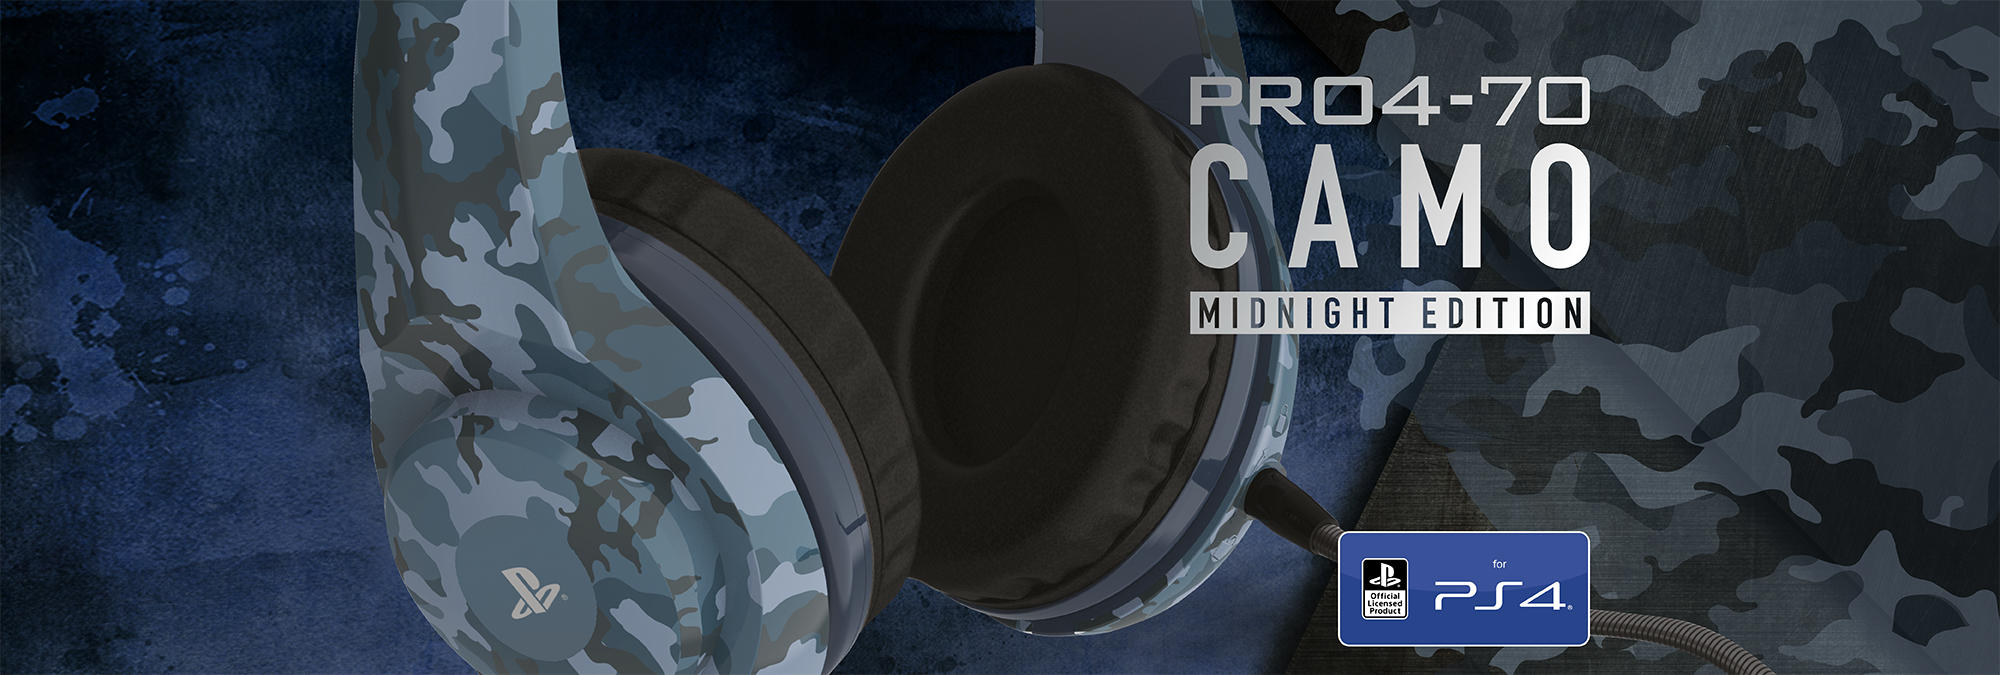 PRO4-70 CAMO Stereo Gaming Headset